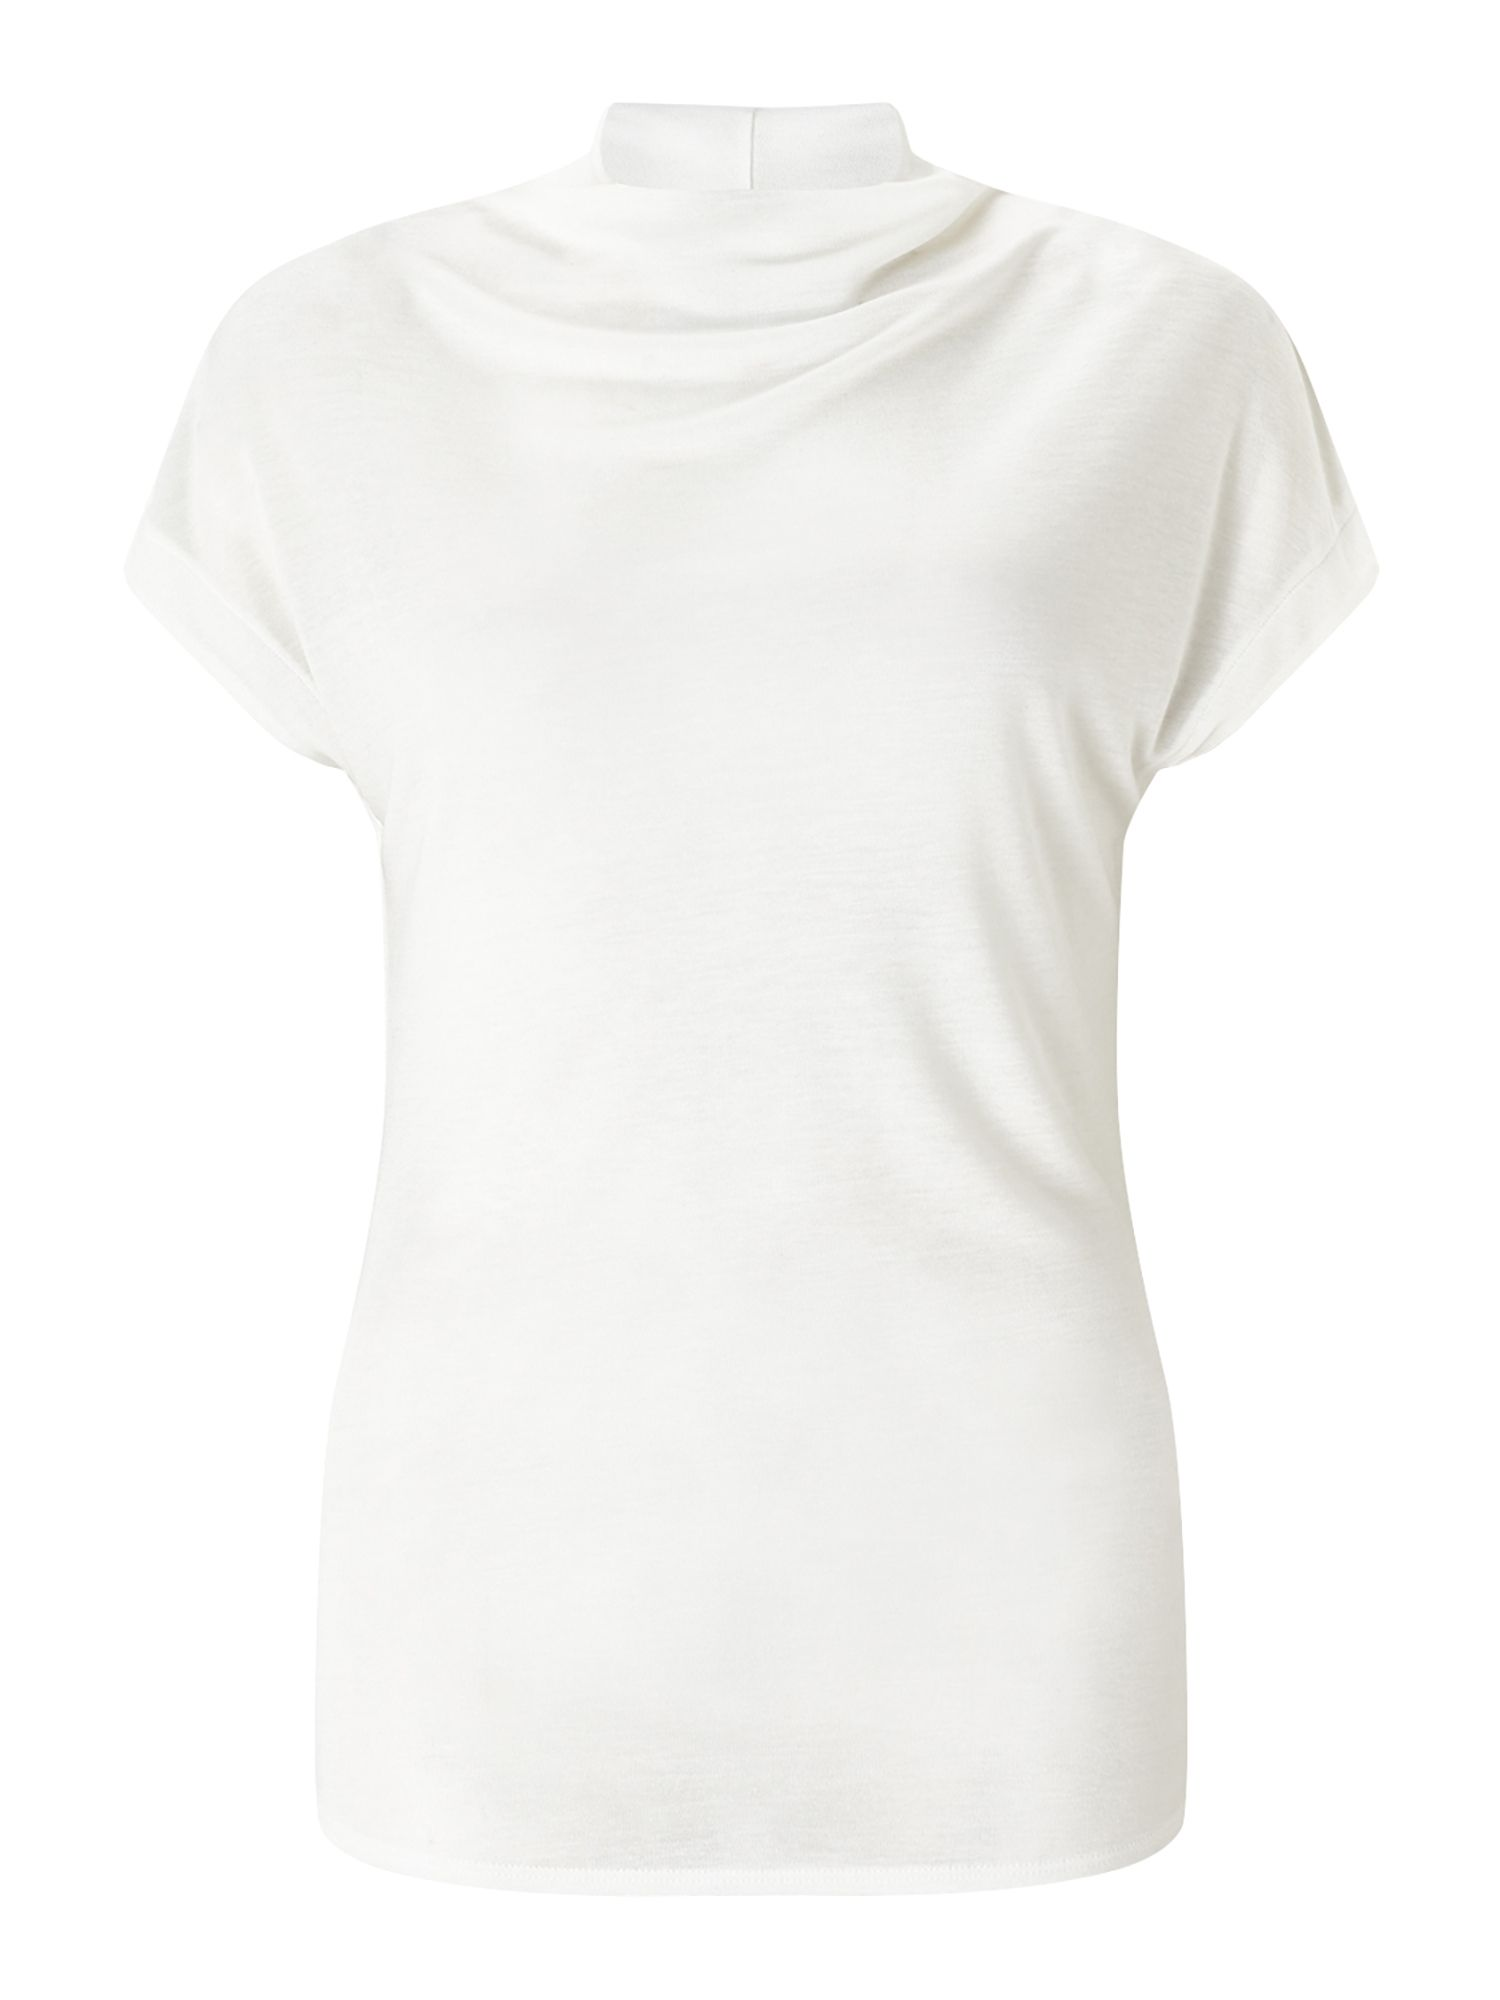 Jigsaw Turtleneck Cap Sleeve Tee, Cream